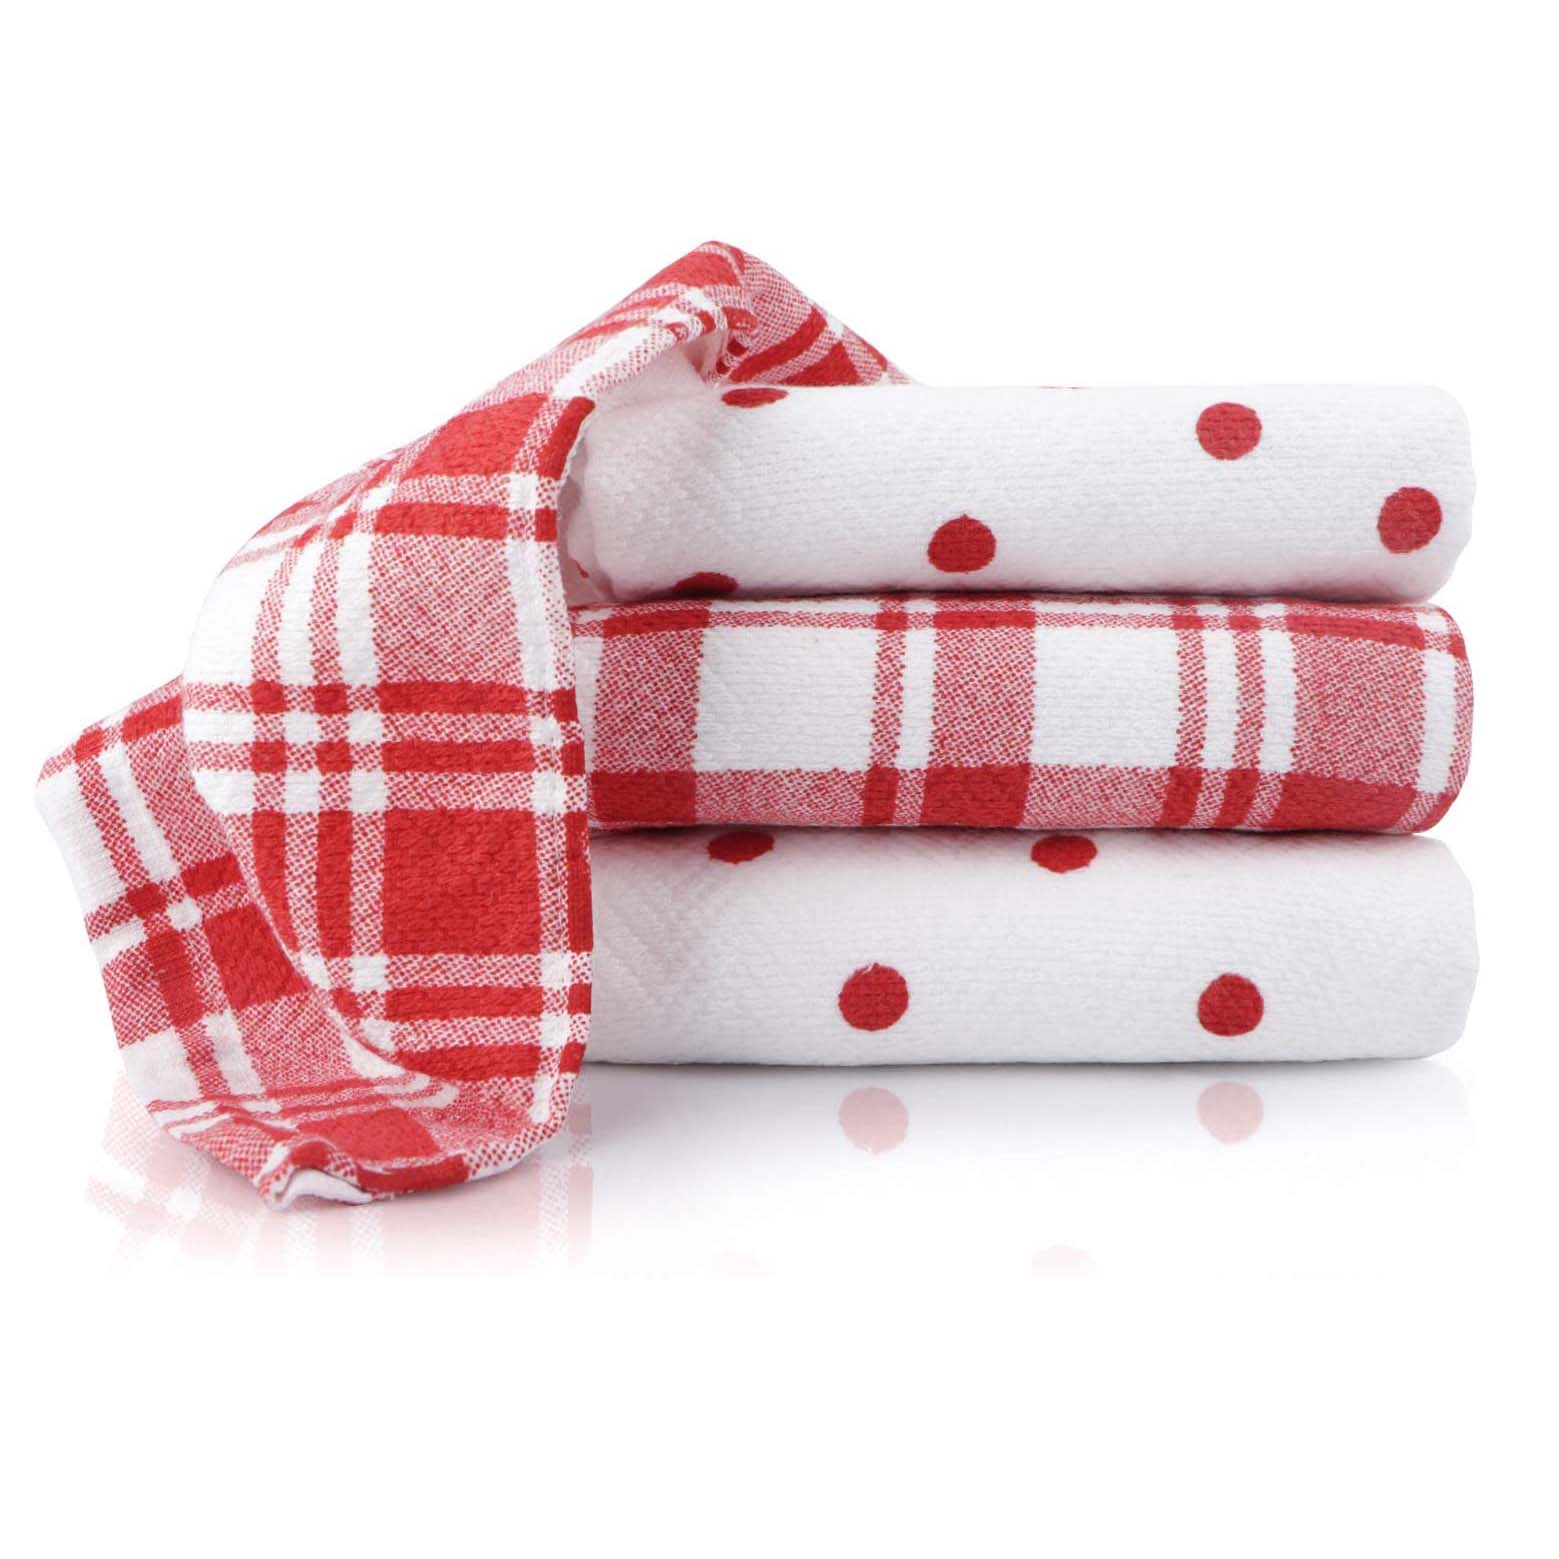 Patterned Red and White Kitchen Towels